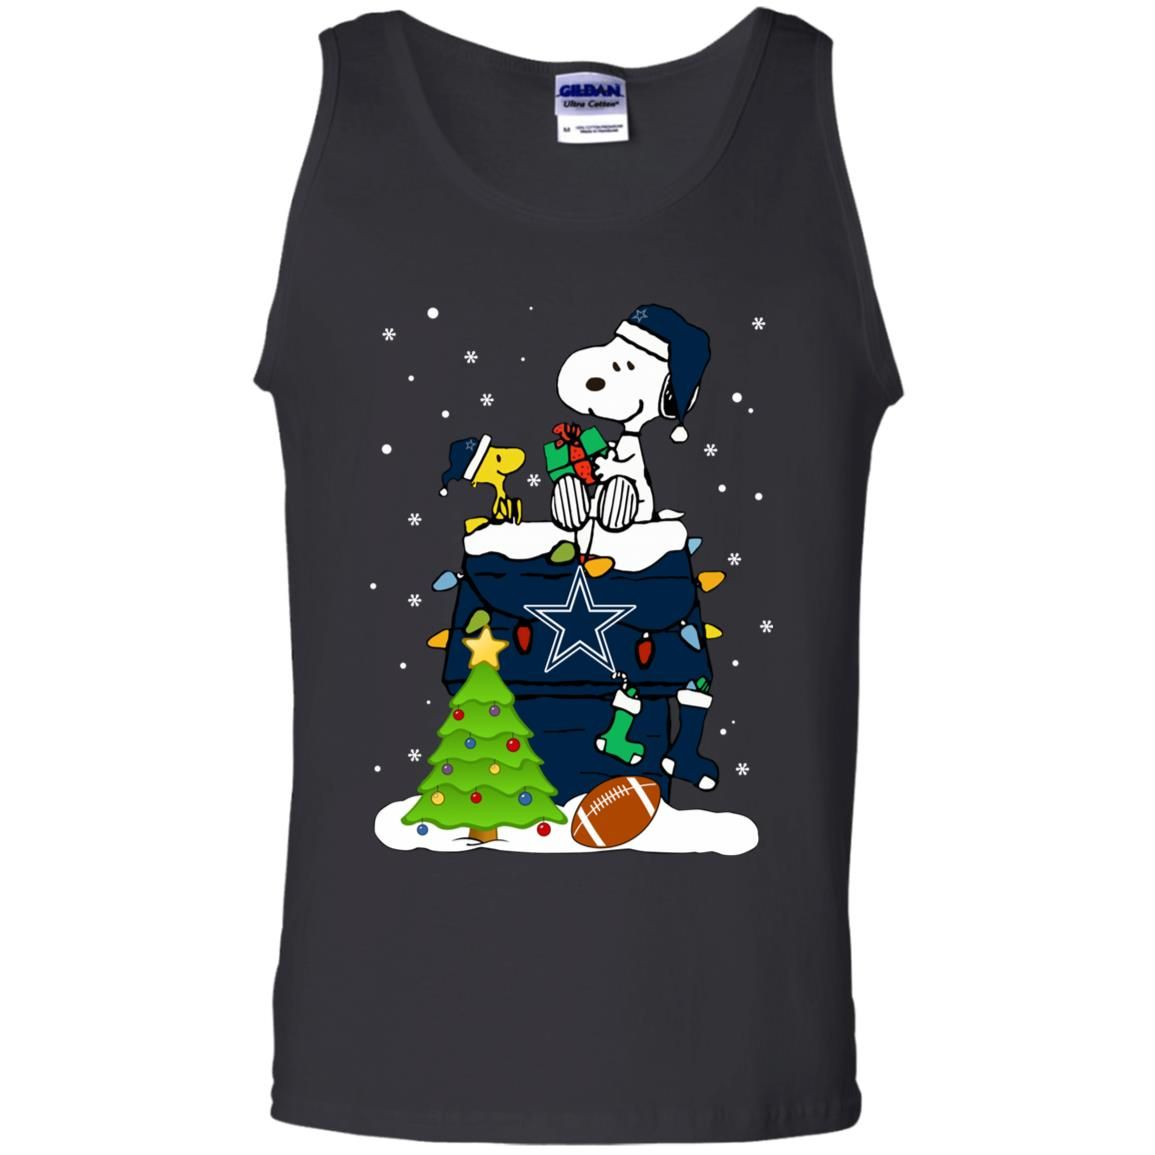 Merry Christmas Nfl 2020 Snoopy Merry Christmas NFL Cowboys Men's Tank Top | Violette